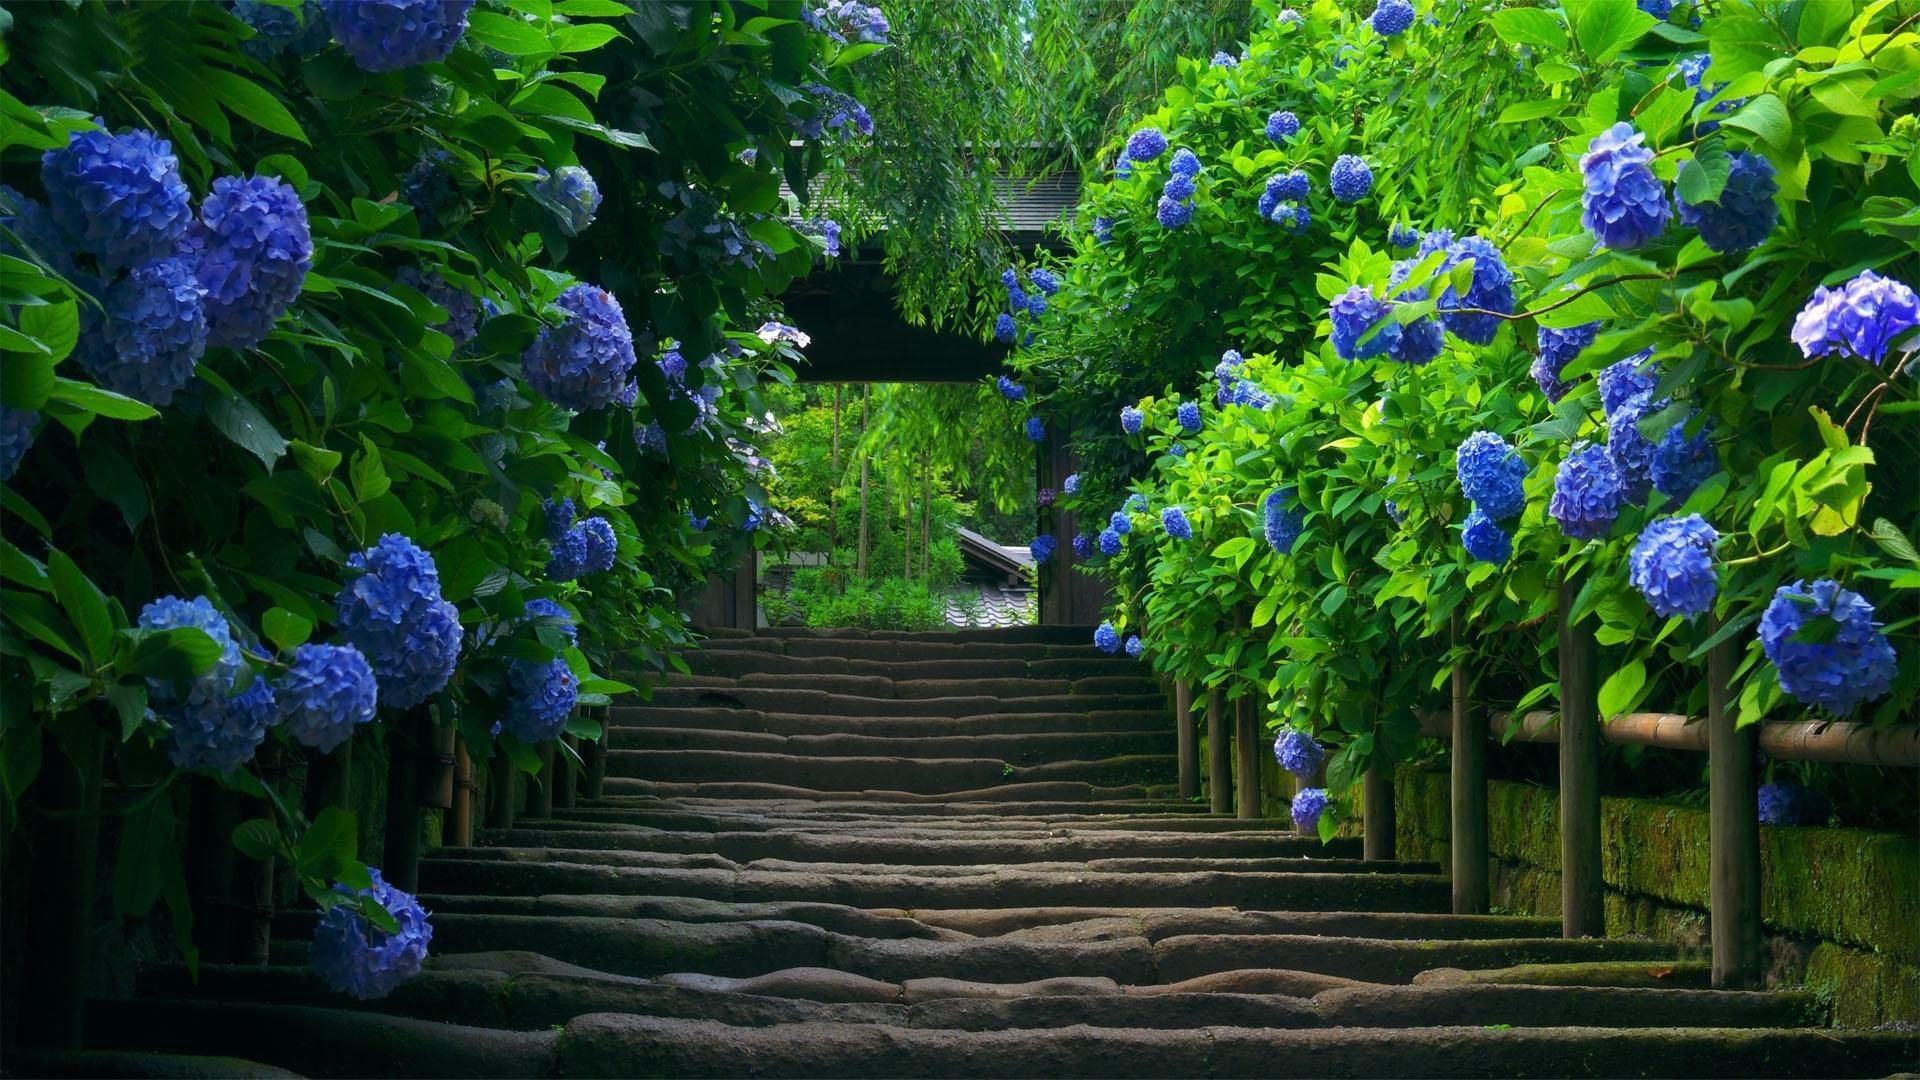 25 Amazing Garden Photos in HD | 4 SEASONS PARADISE | Pinterest ...